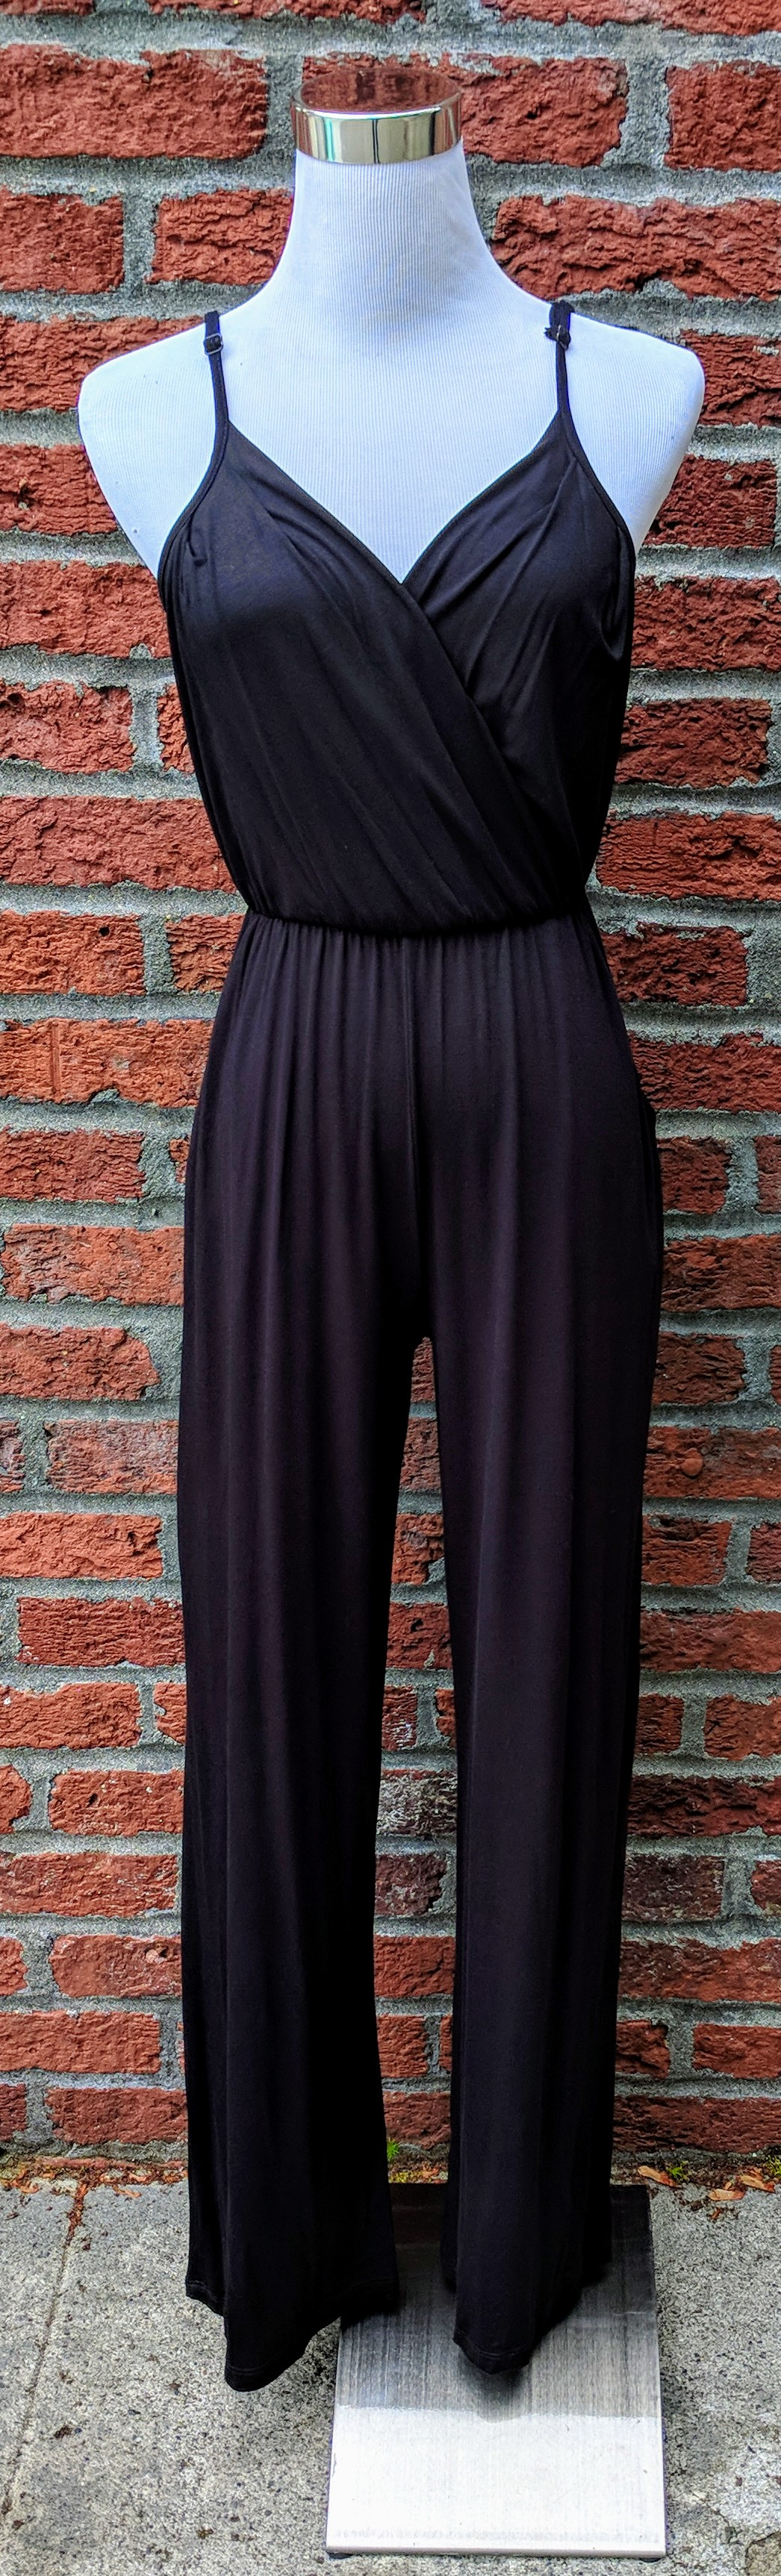 Black jumpsuit with cinched waist and adjustable straps.